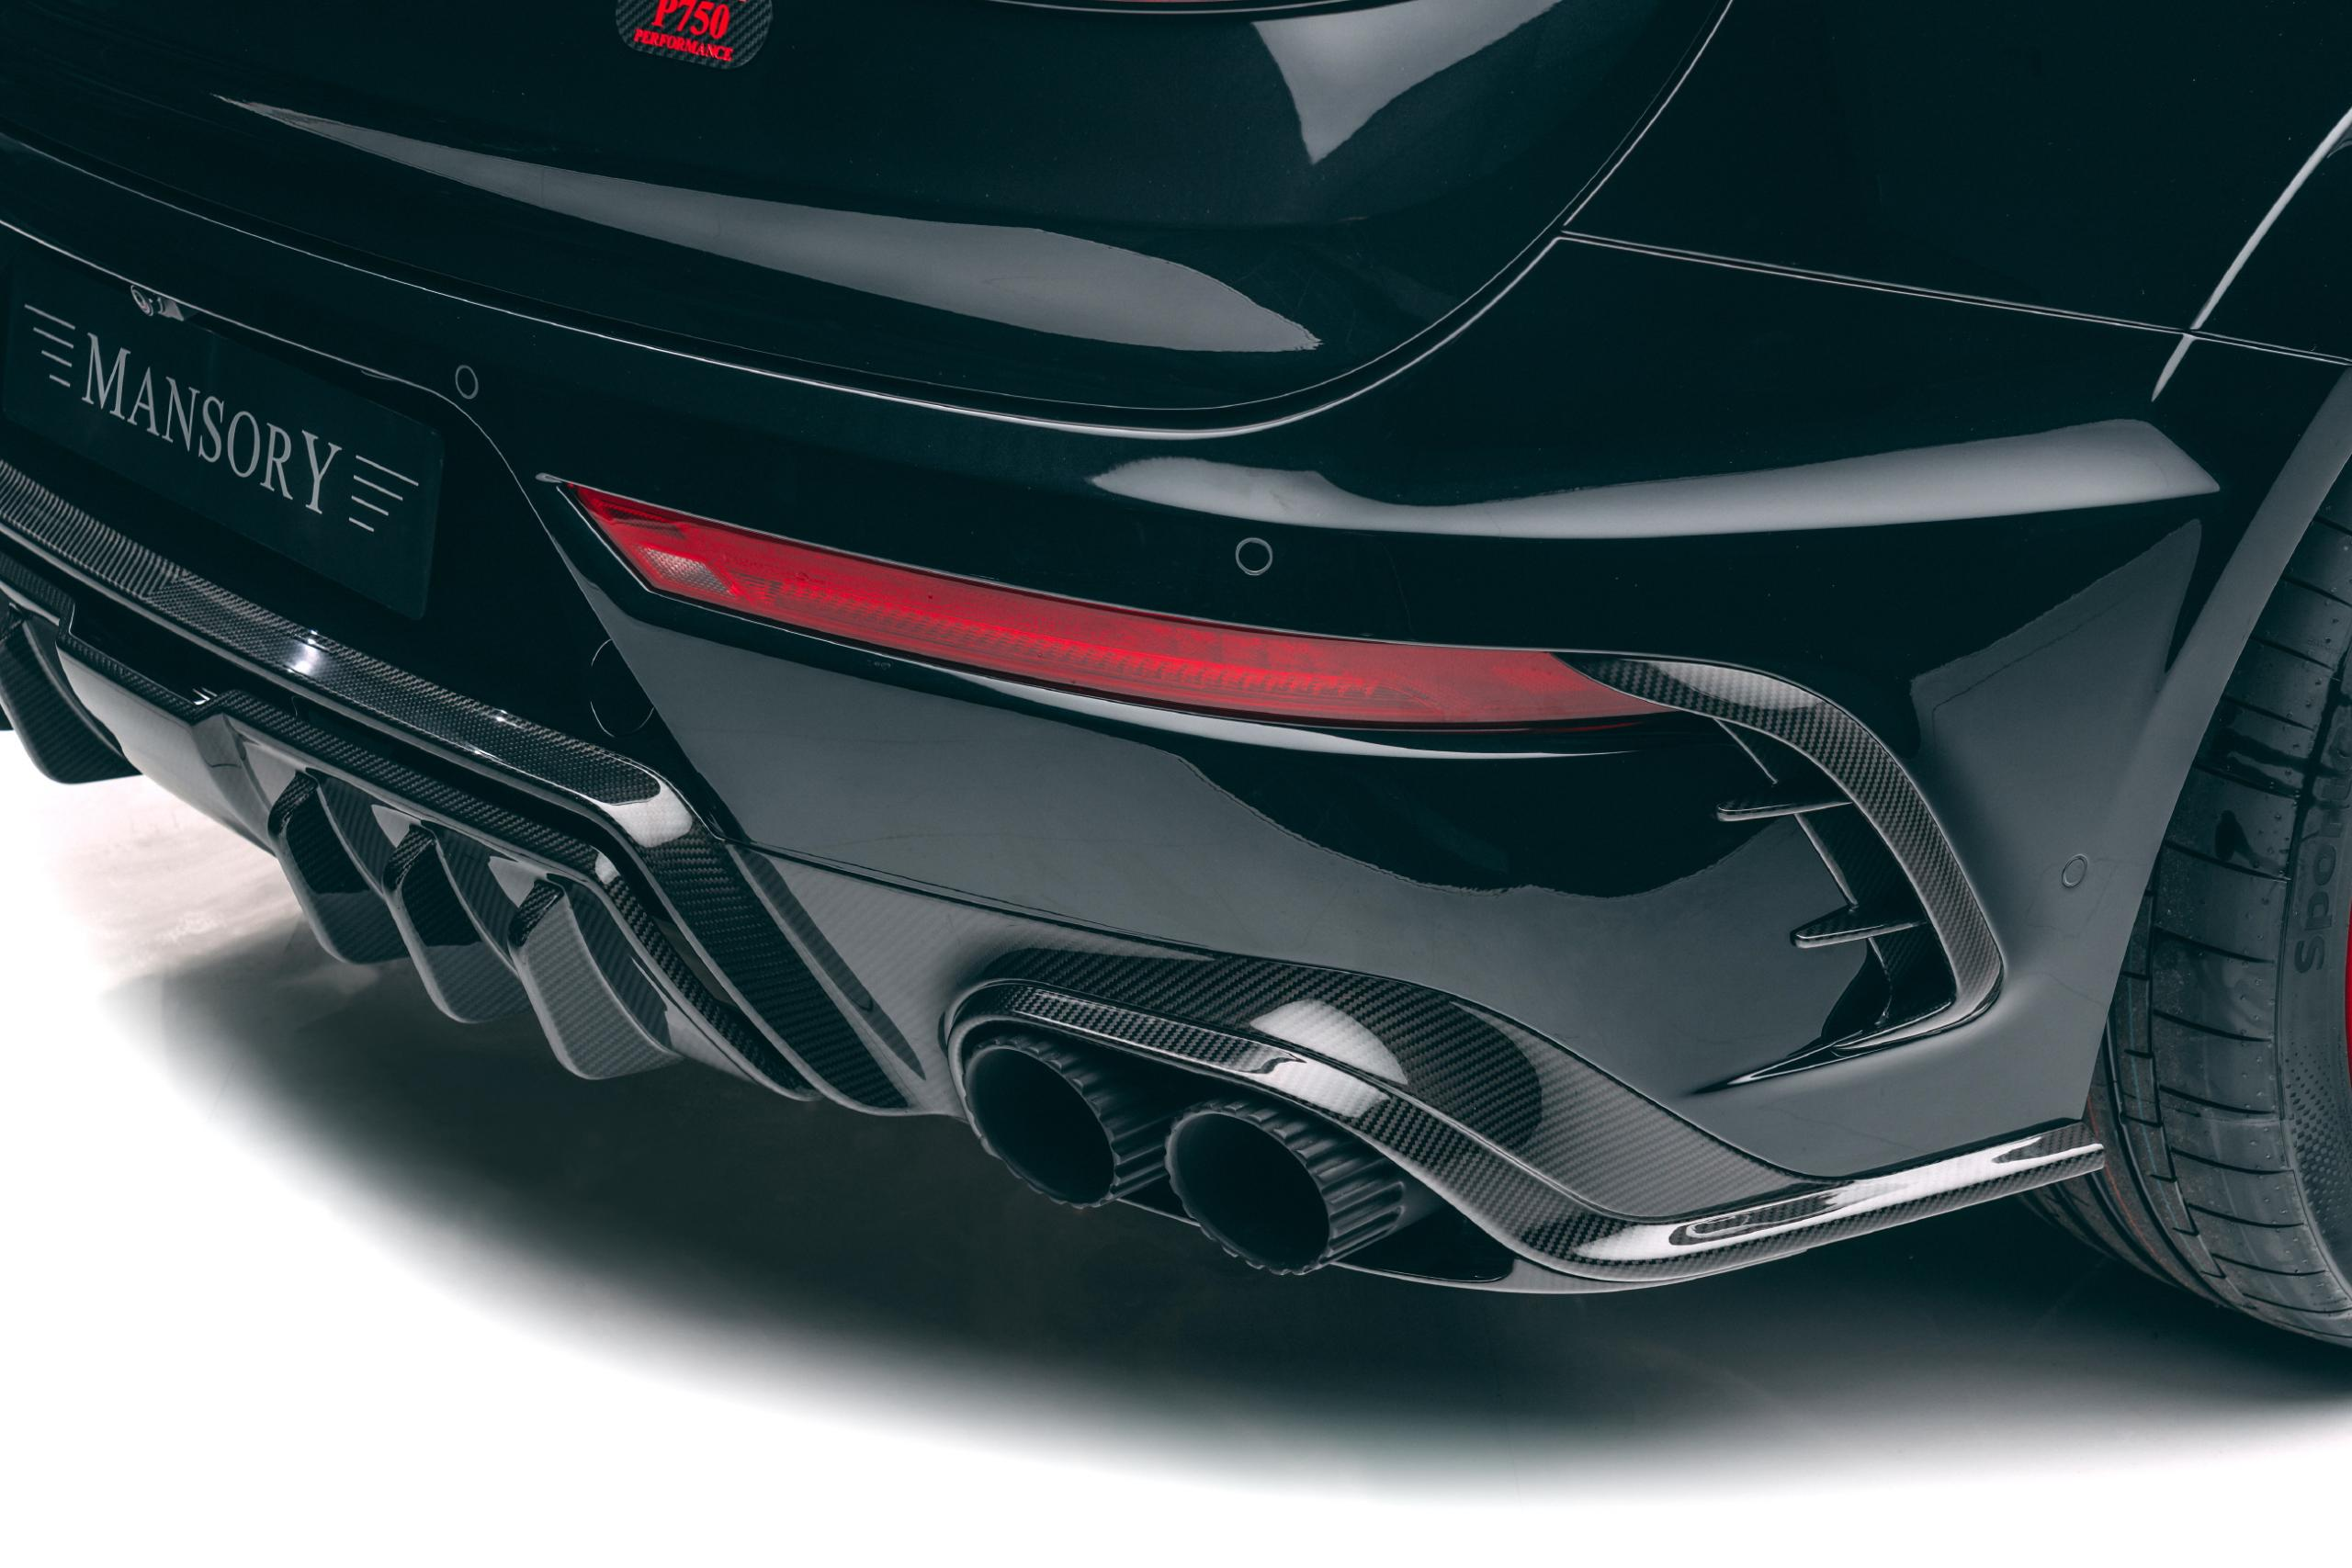 mansory new bentayga wide body kit carbon fiber rear diffuser exhaust tips rear bumper outtake 2021